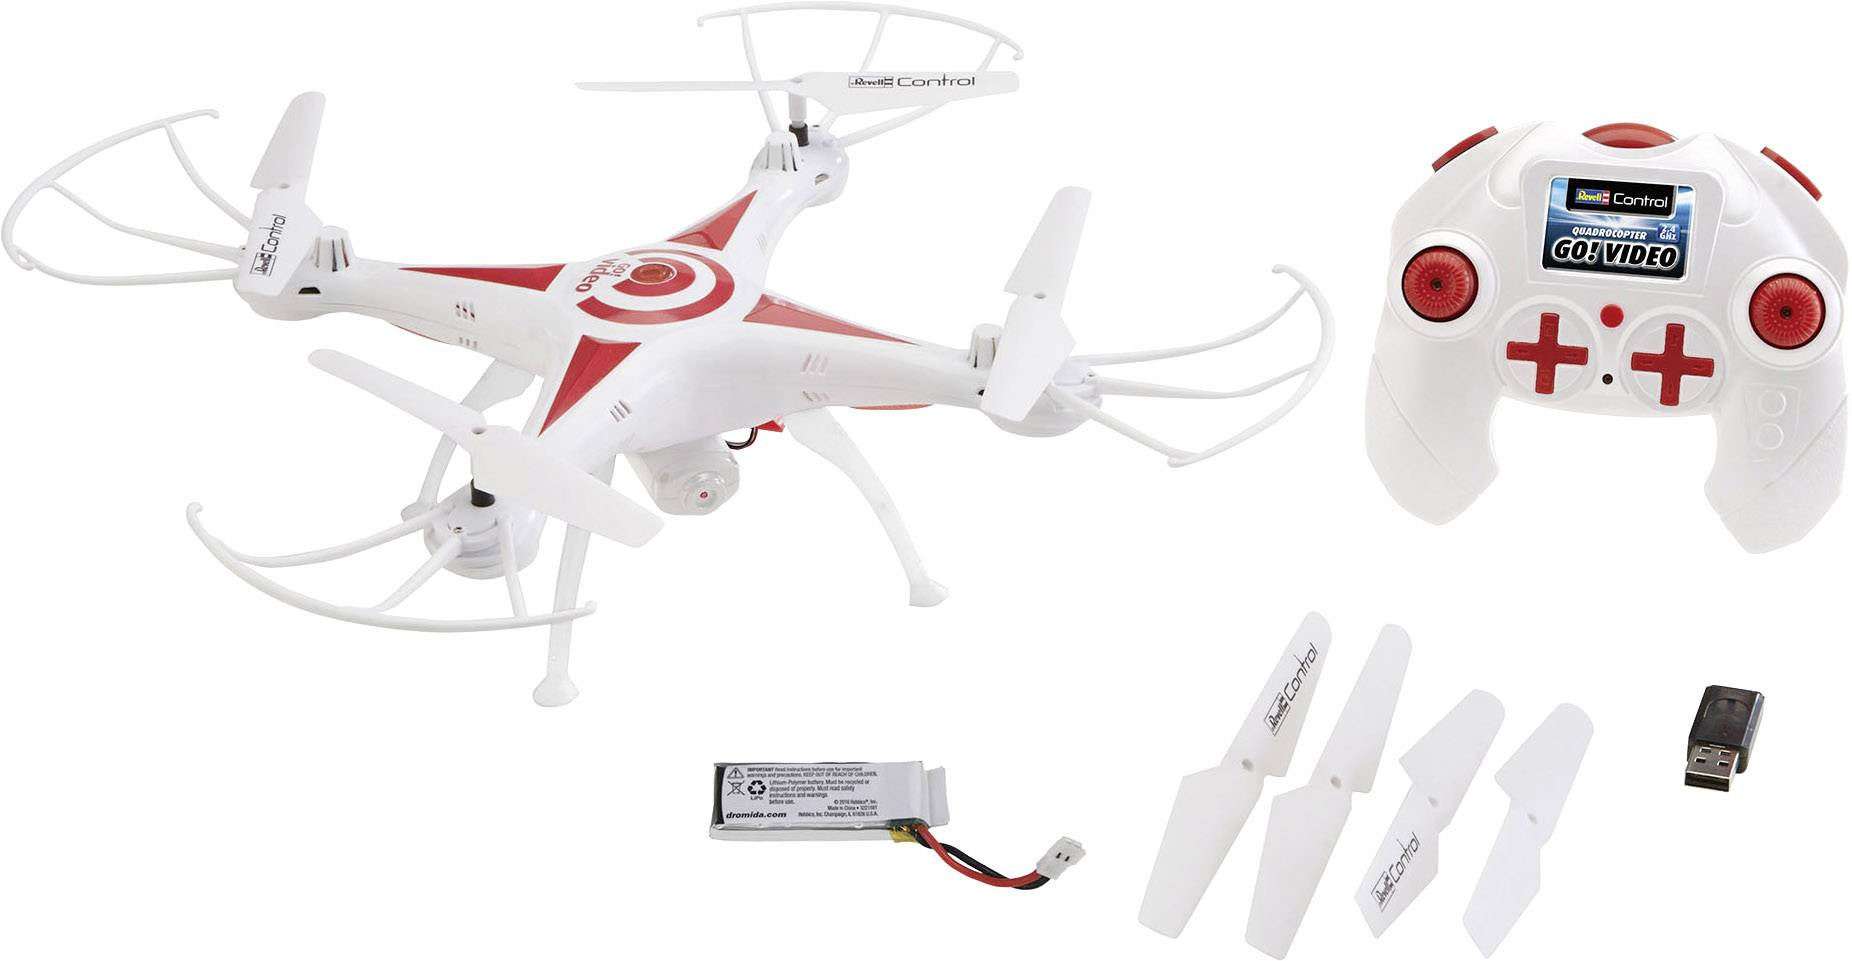 Dron Revell Control GO! Video, RtF